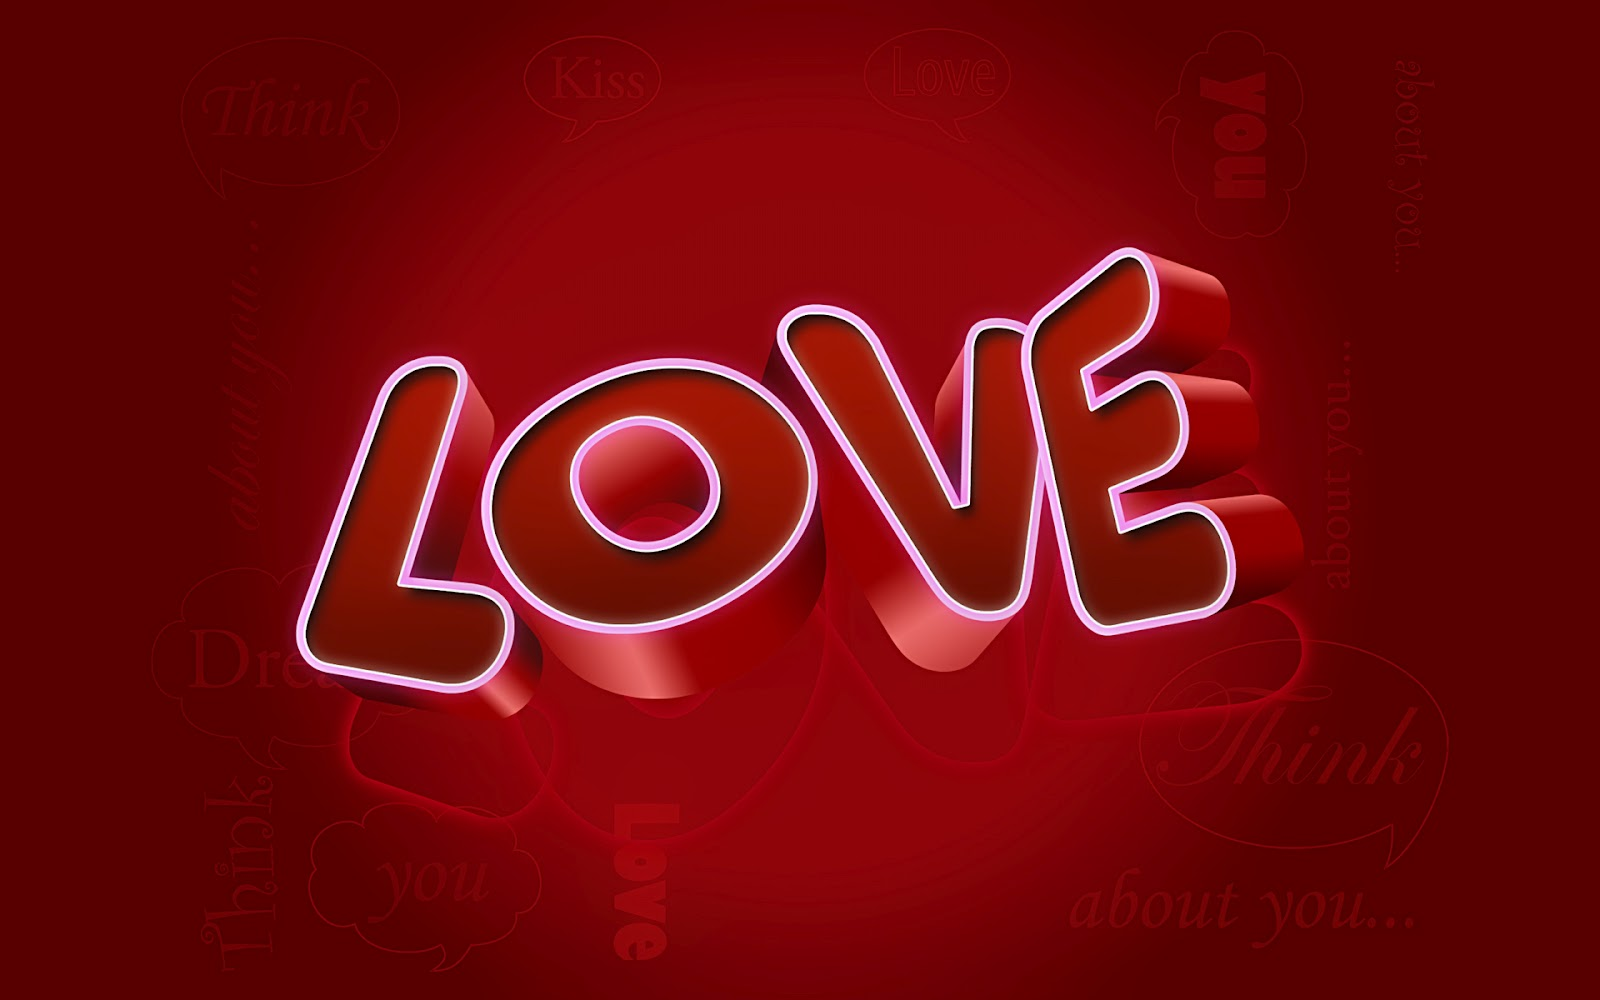 Love you wallpapers valentines day 2015